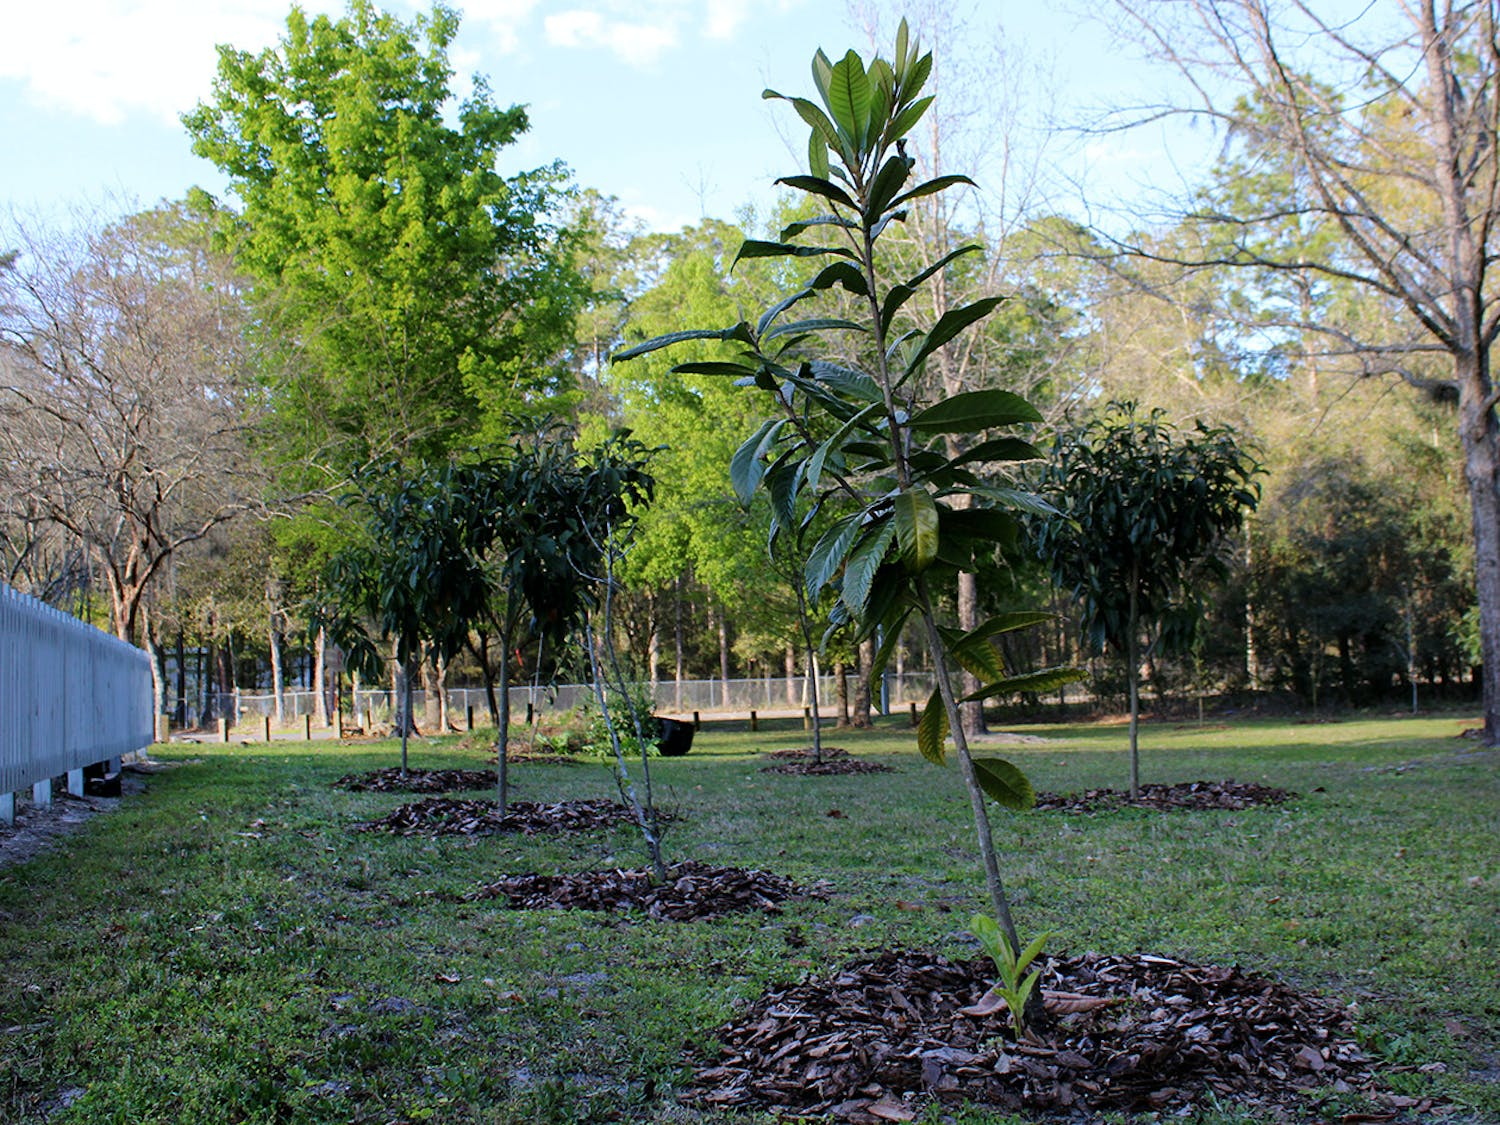 A Loquat, or Japanese Plum, tree sits next to the community garden and other newly-planted fruit trees at Fred Cone Park on Tuesday, March 9, 2021. The trees were planted in the park as a part of the city of Gainesville's Edible Groves project.